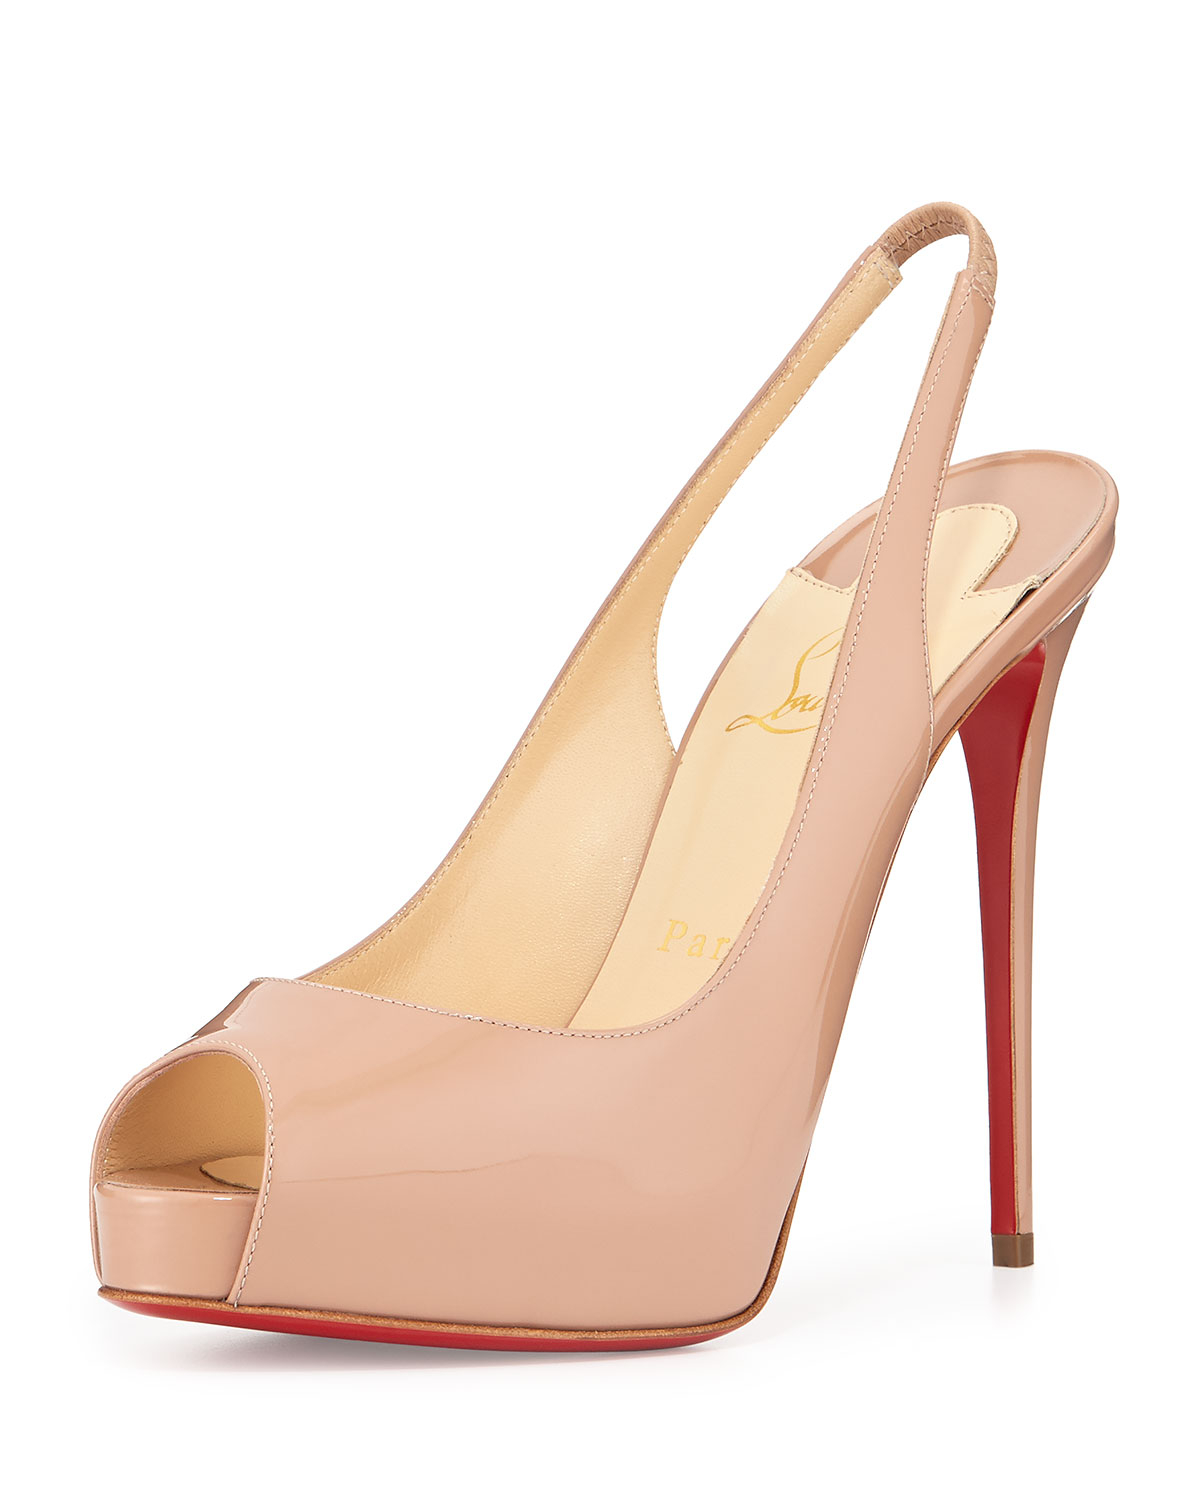 8cb653de3 Christian Louboutin Private Number Slingback in Natural - Lyst